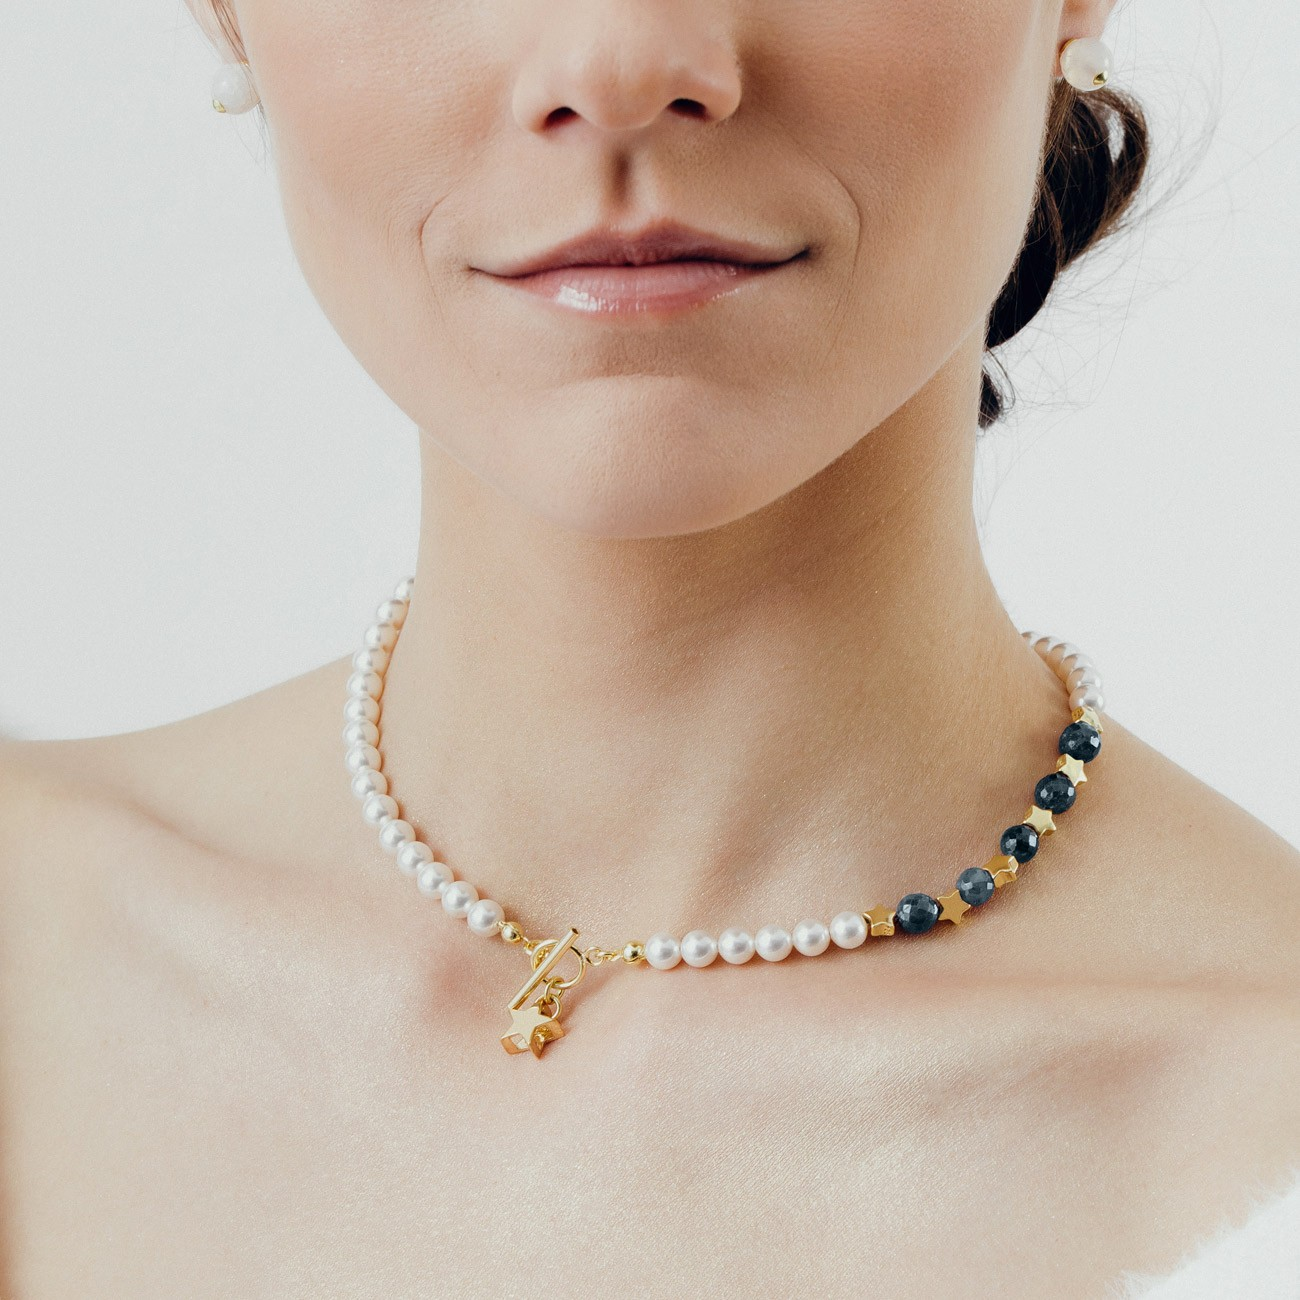 Sapphire pearl choker with stars, sterling silver 925